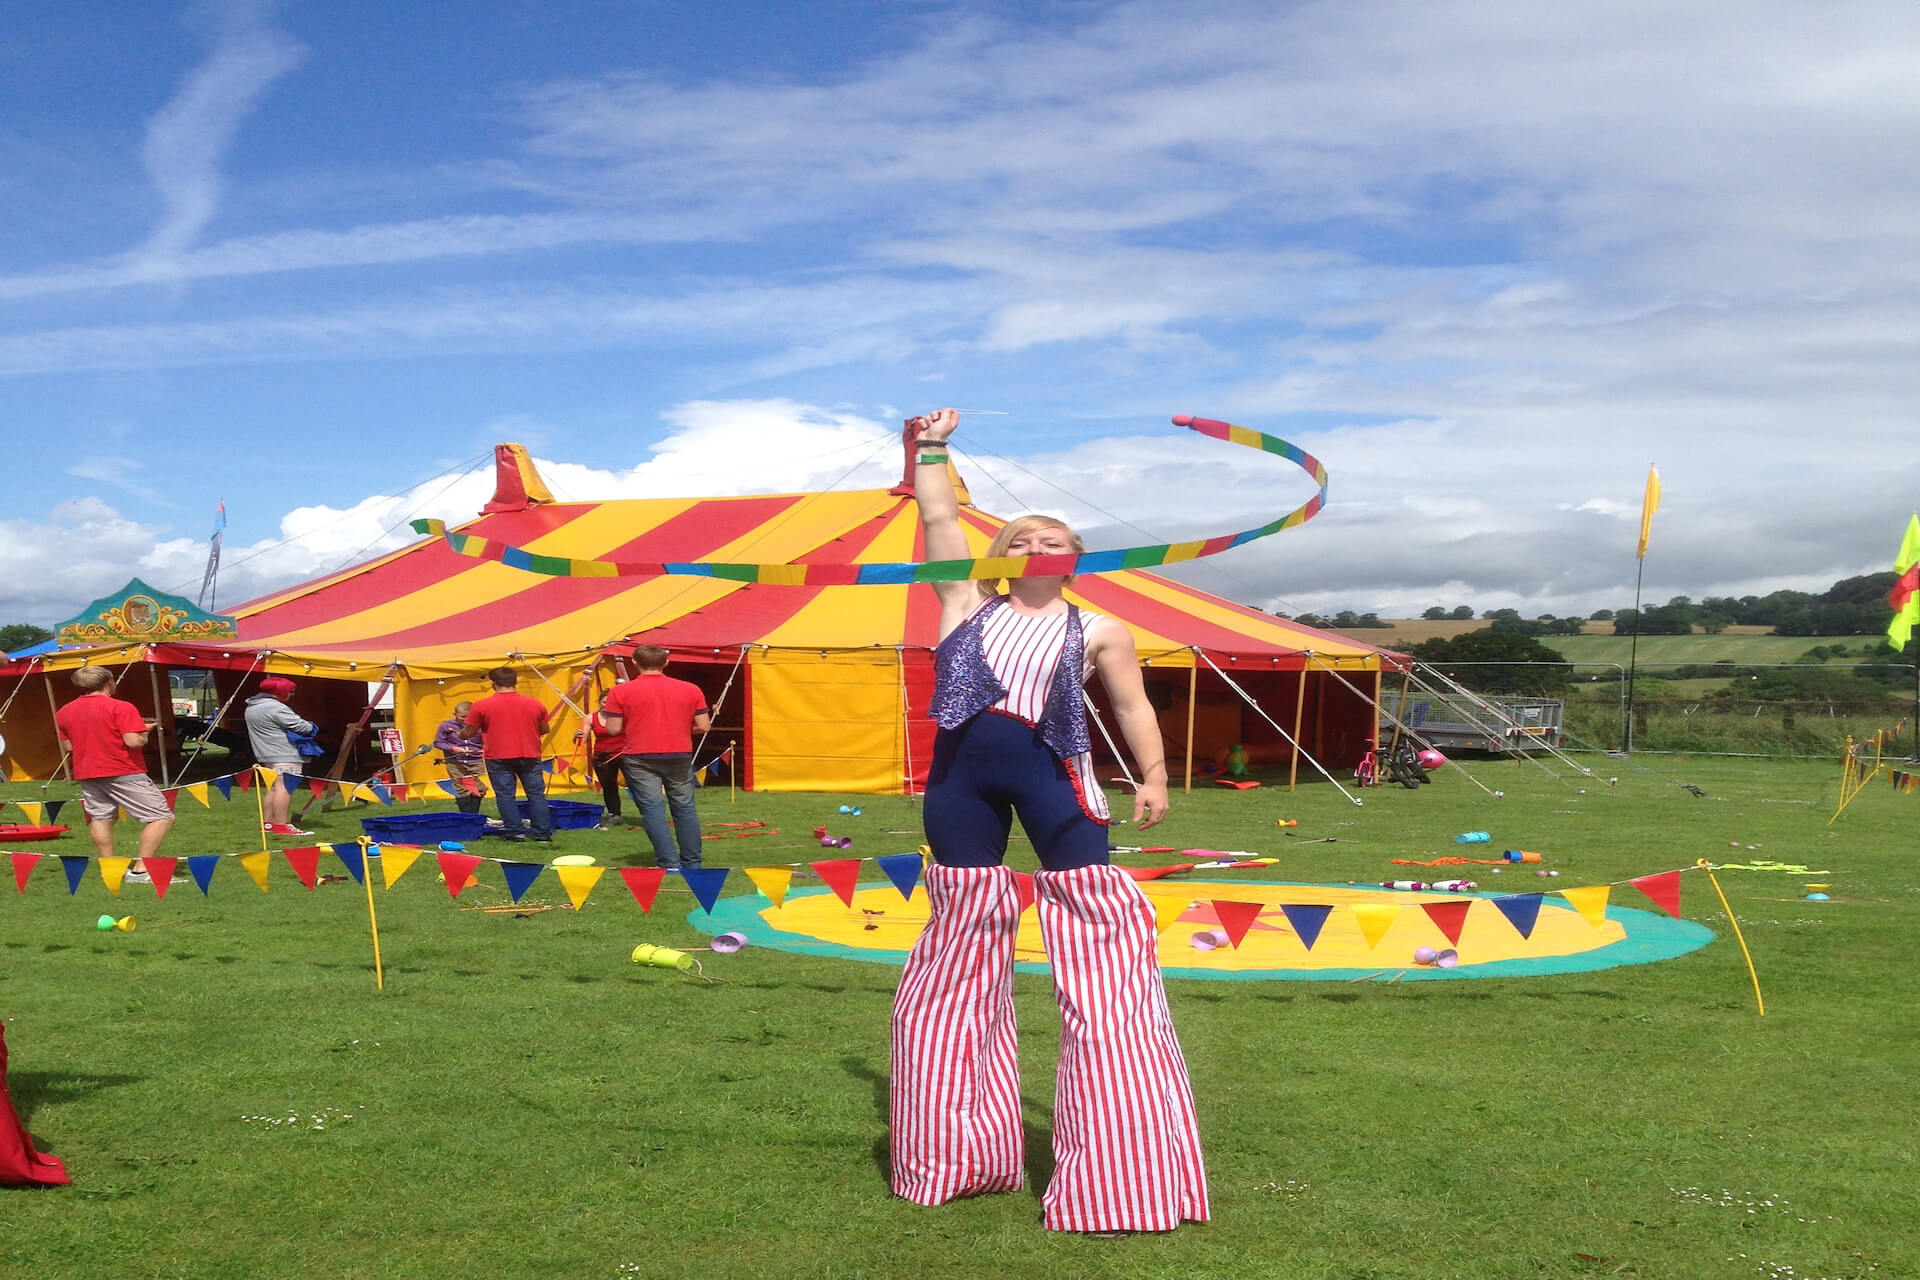 Nibley festival childrens play area tent Gloucester